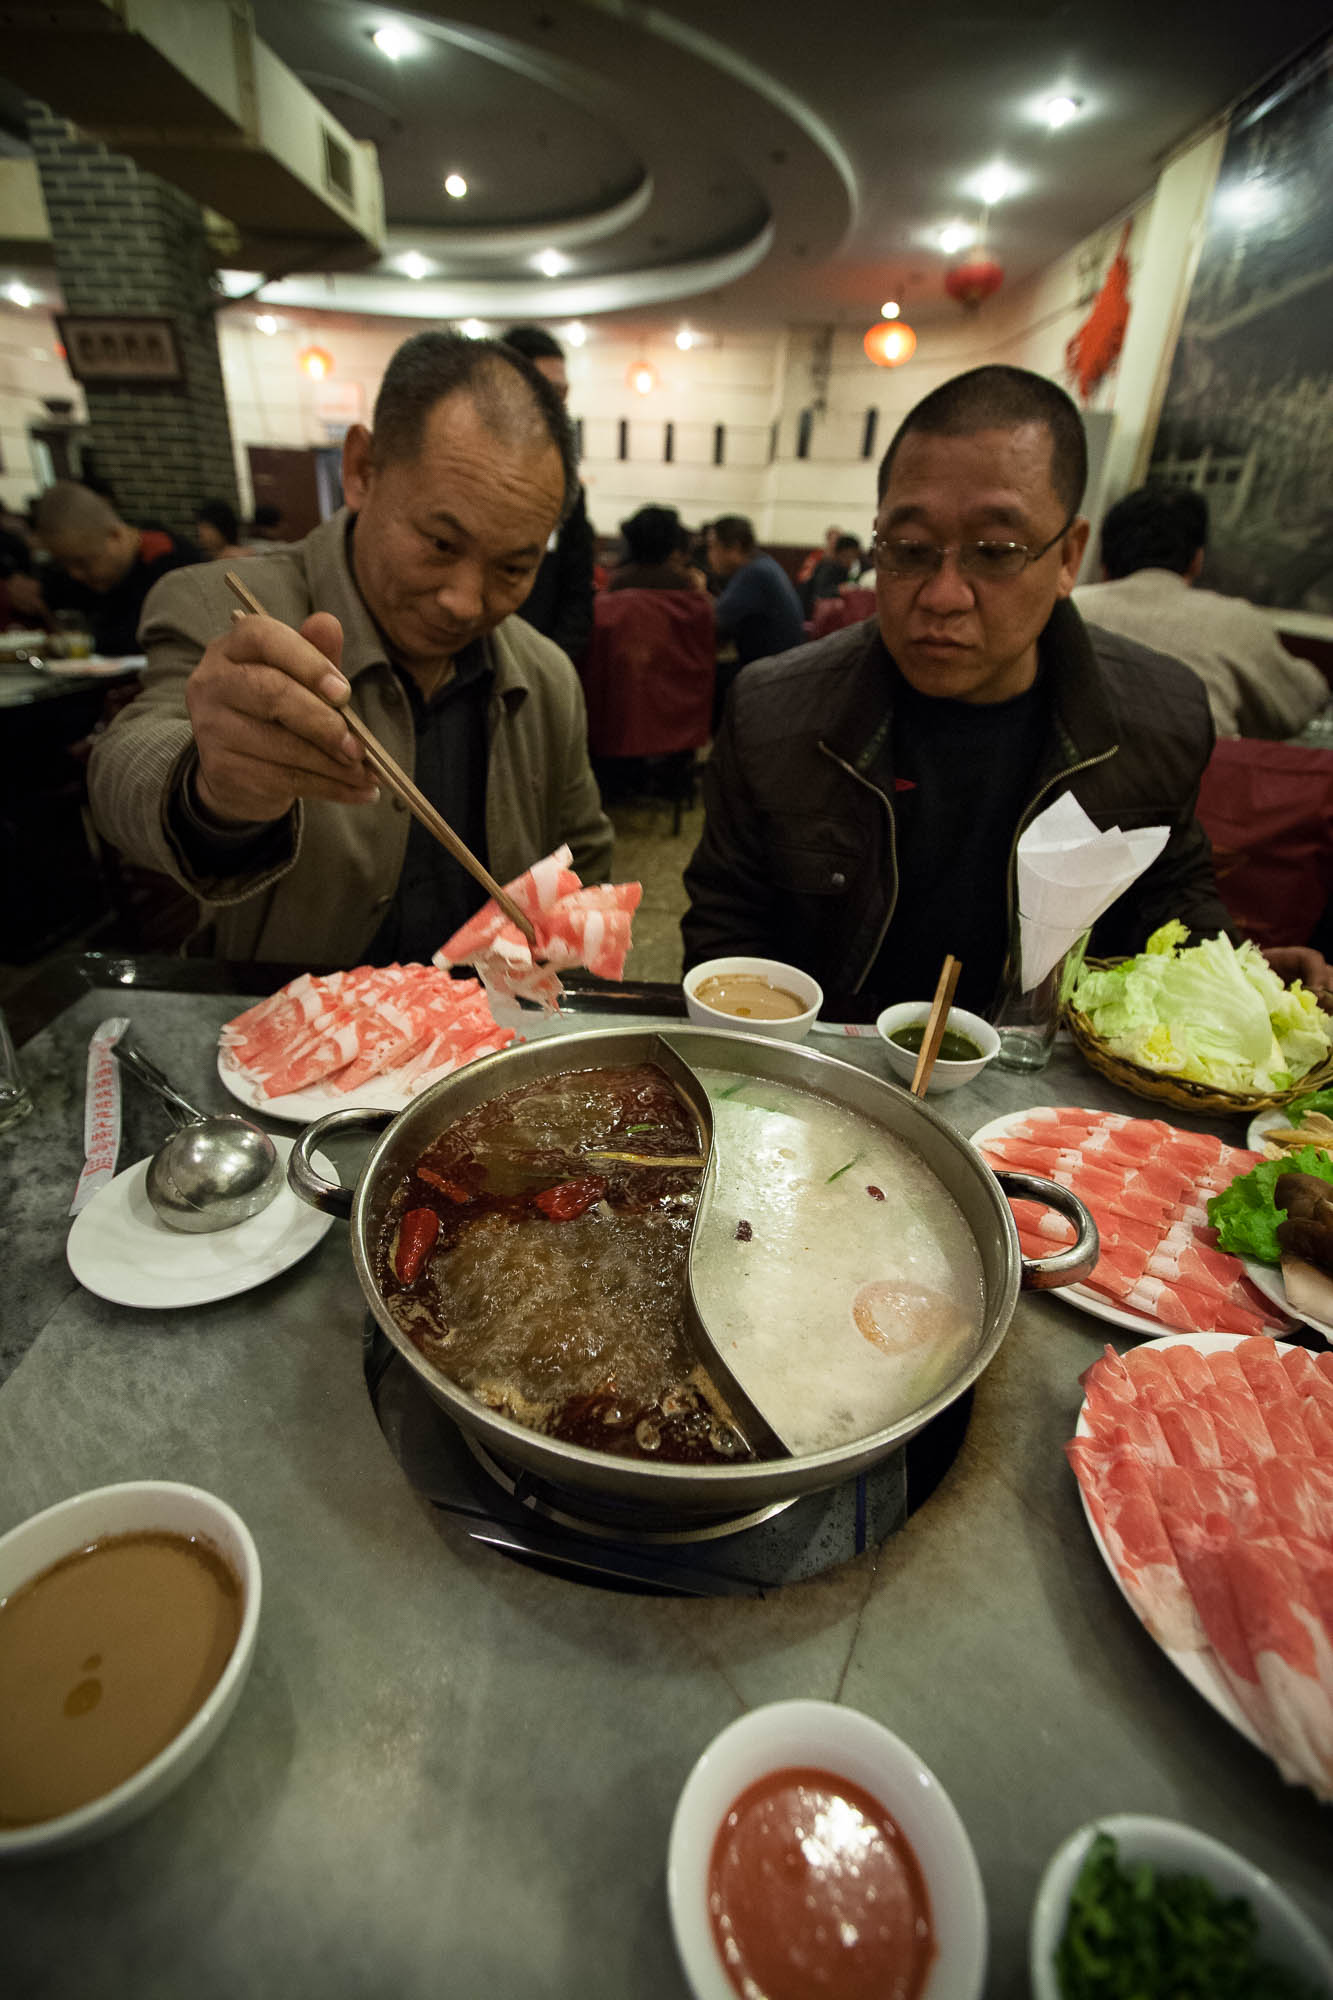 The Yang brothers treated me to hot pot in their own restaurant